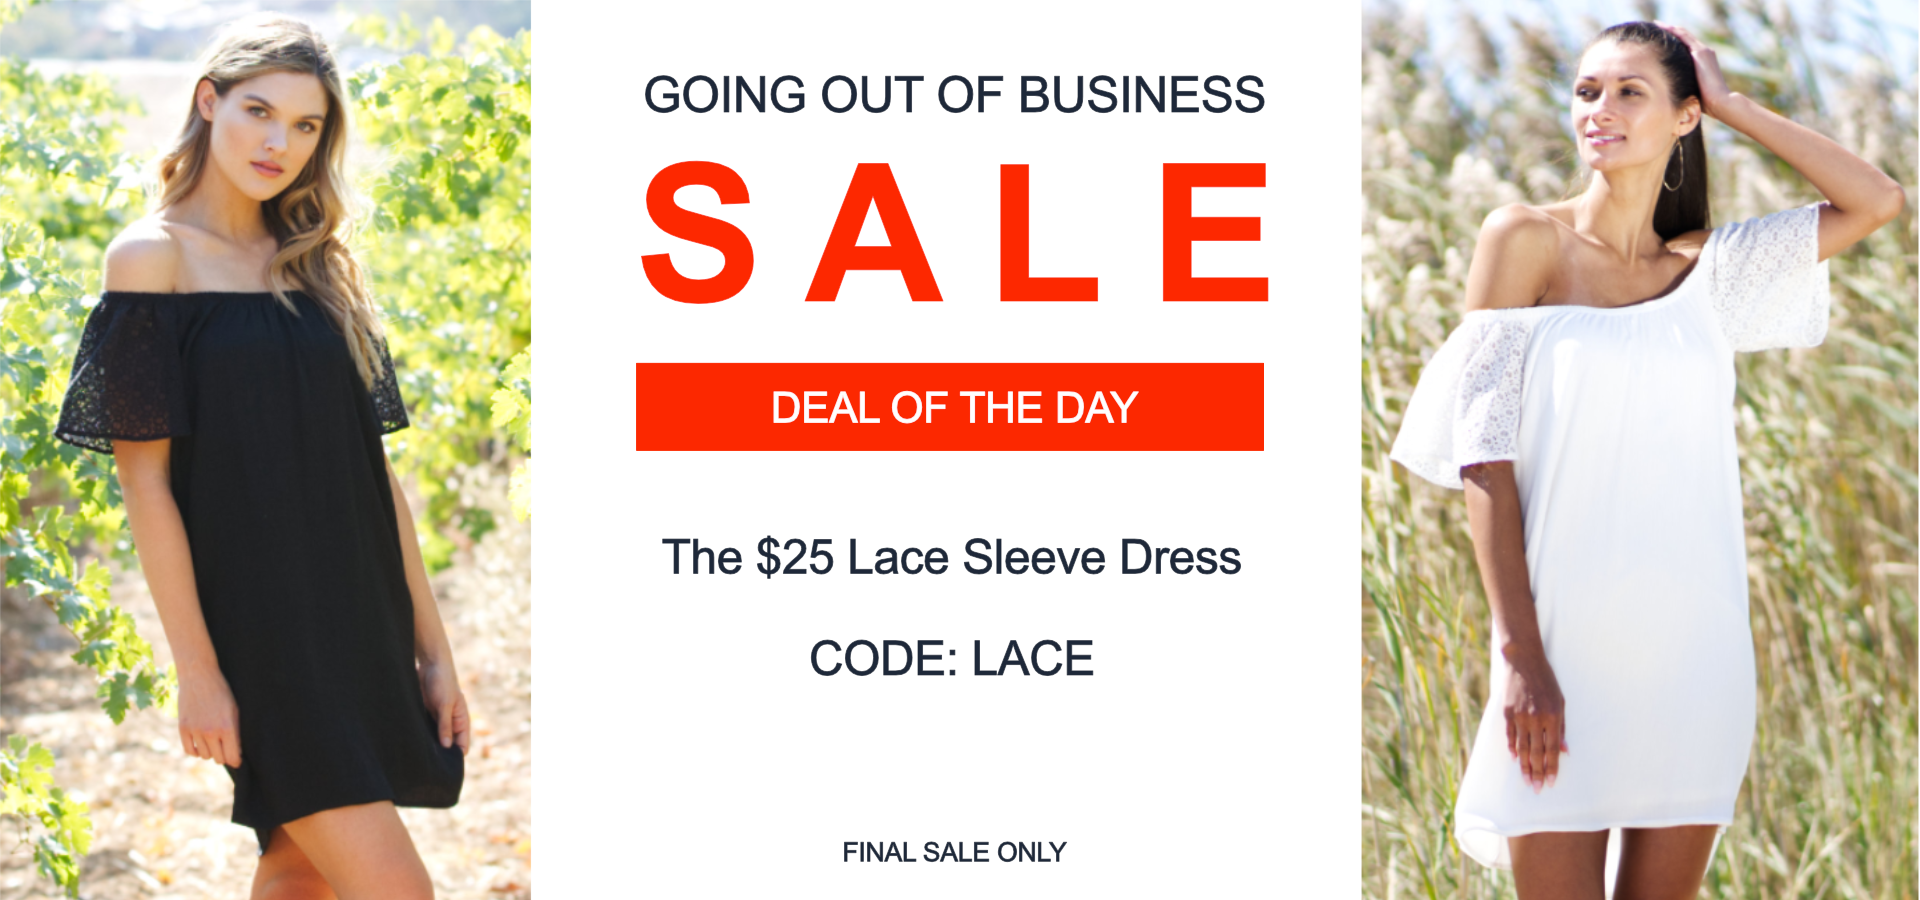 Vacay deal of the day lace sleeve dress